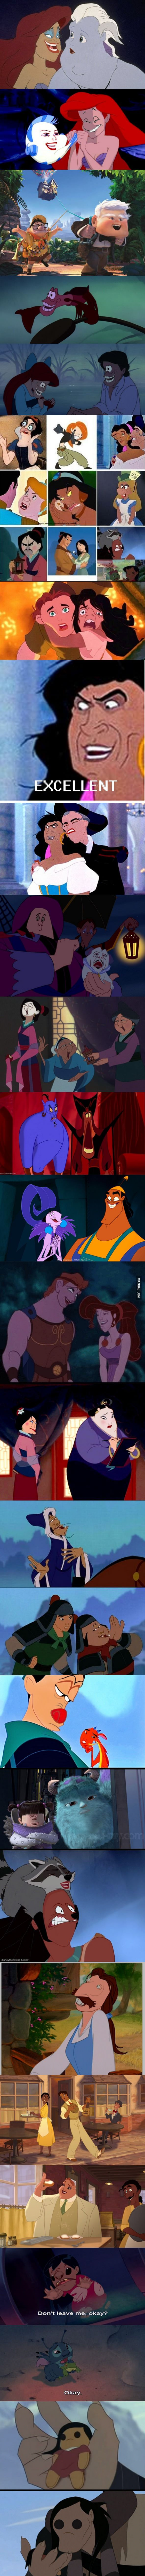 Disney face switch, This made me laugh more than it should have. Esp. the ariel and eric one....and the one of belle....